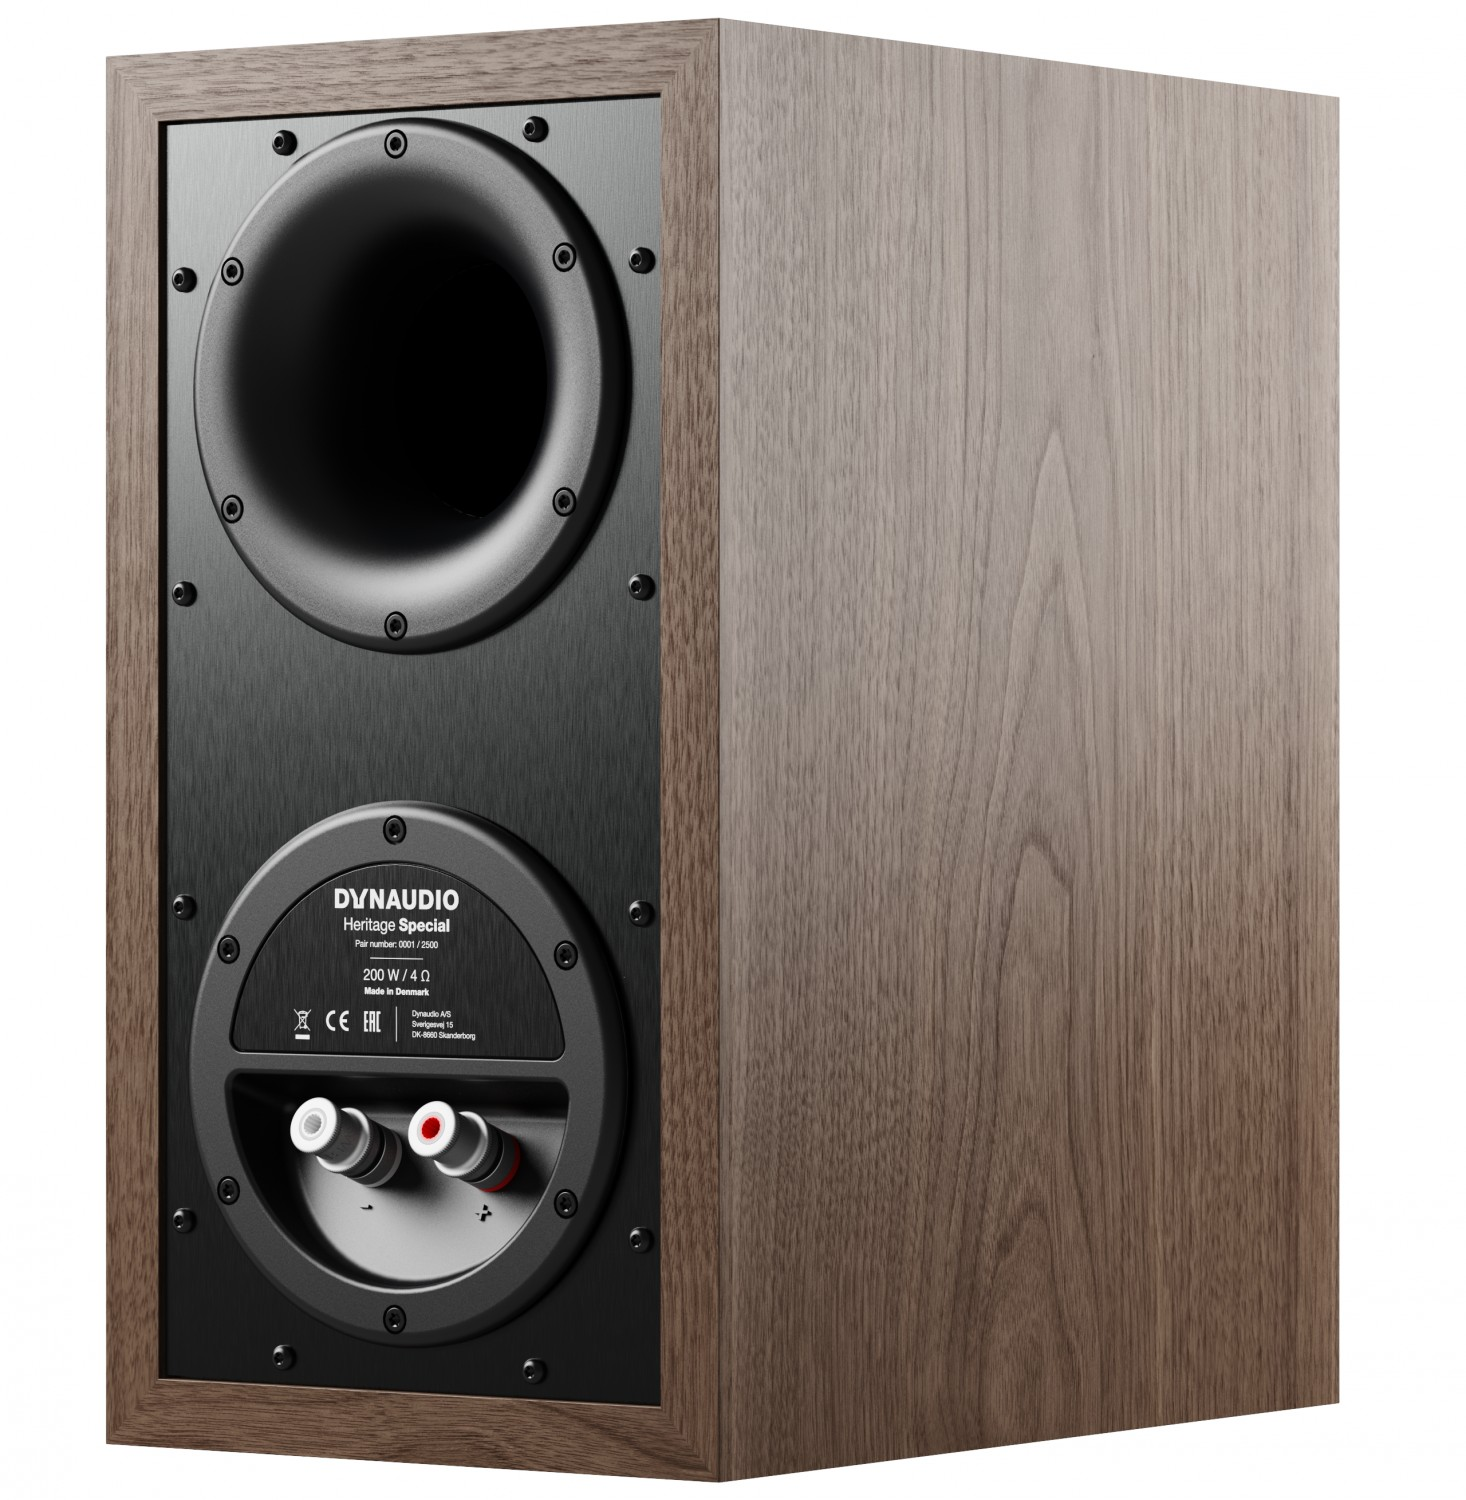 High-End Dynaudio Heritage Special Limited Edition - News, Bild 2